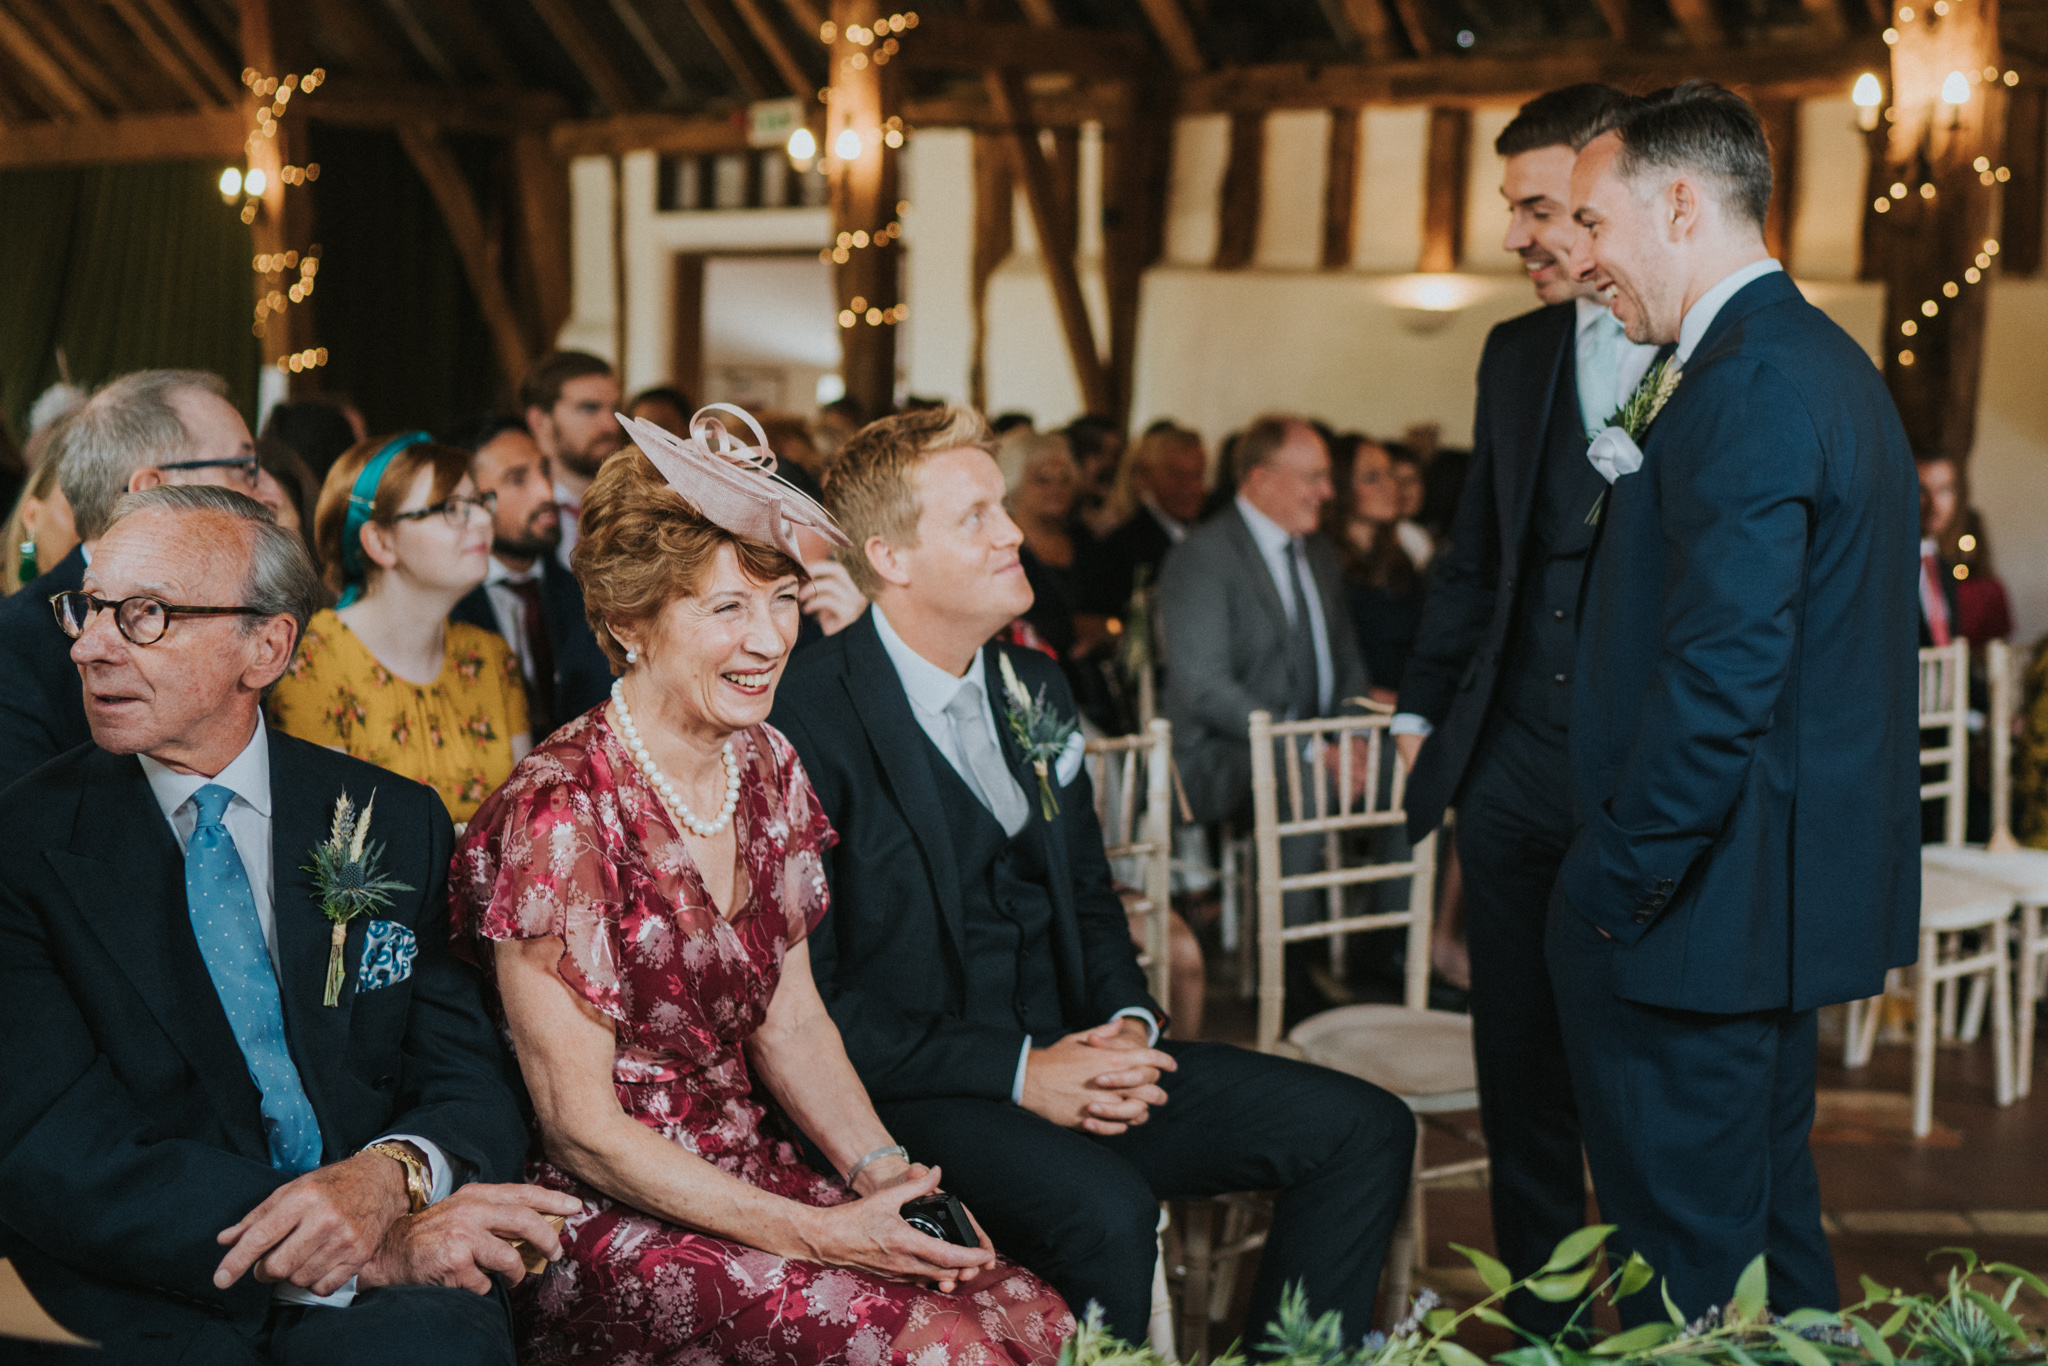 jane-patrick-smeetham-hall-barn-grace-elizabeth-colchester-essex-alternative-wedding-lifestyle-photographer-essex-suffolk-norfolk-devon (15 of 52).jpg